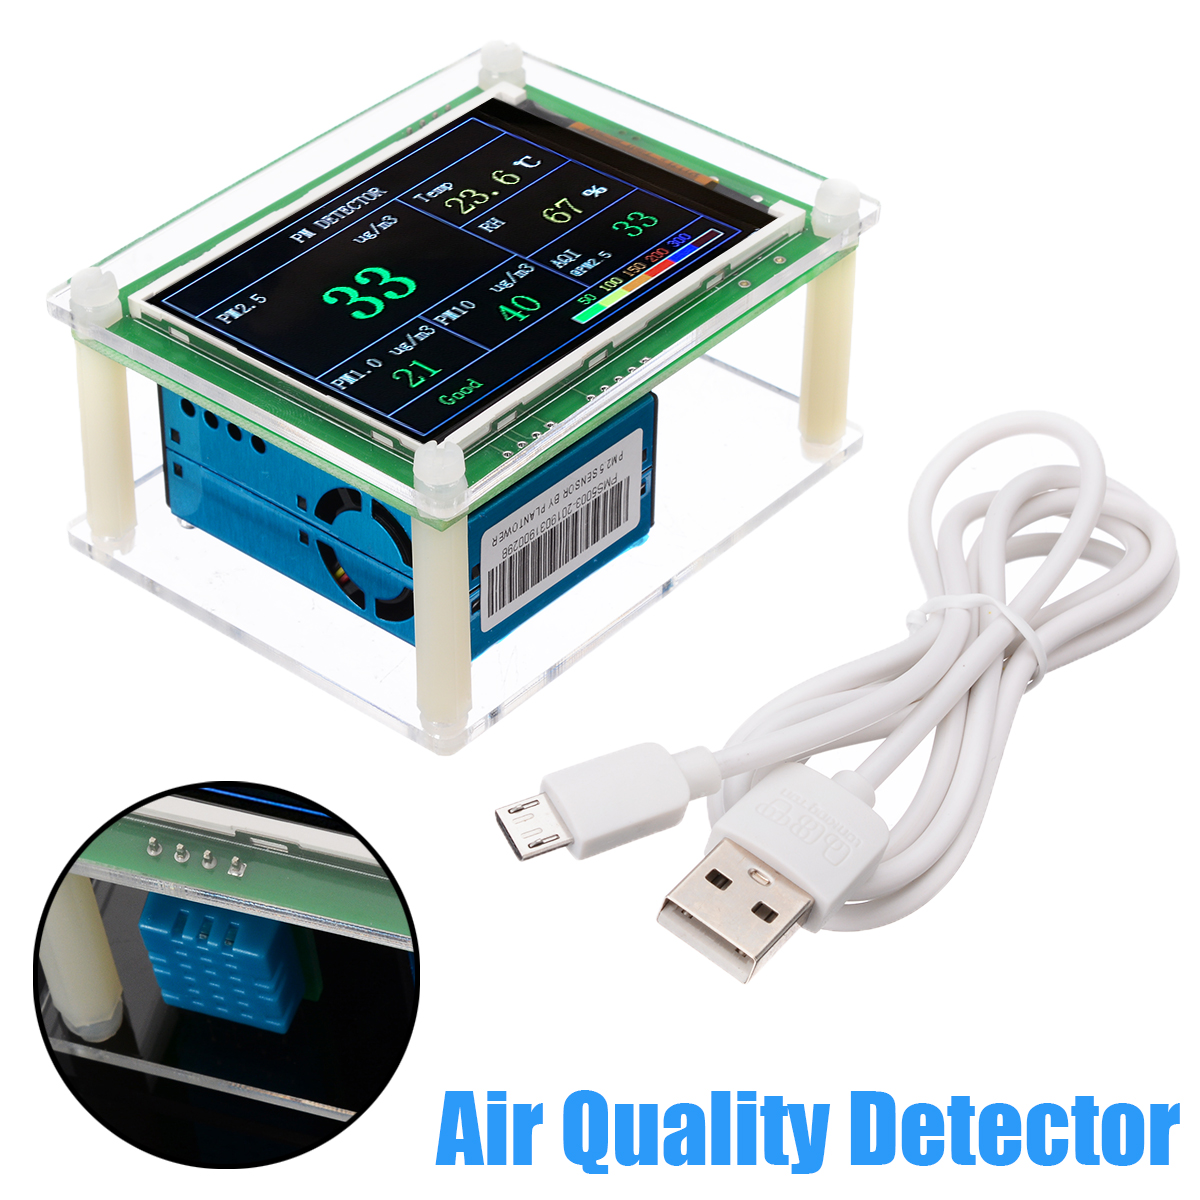 PM2.5 Detector Module DC 5V 2.8 LCD Display Air Quality Dust PM2.5 Sensor Tester Detector for Monitoring Home Office Car Tools